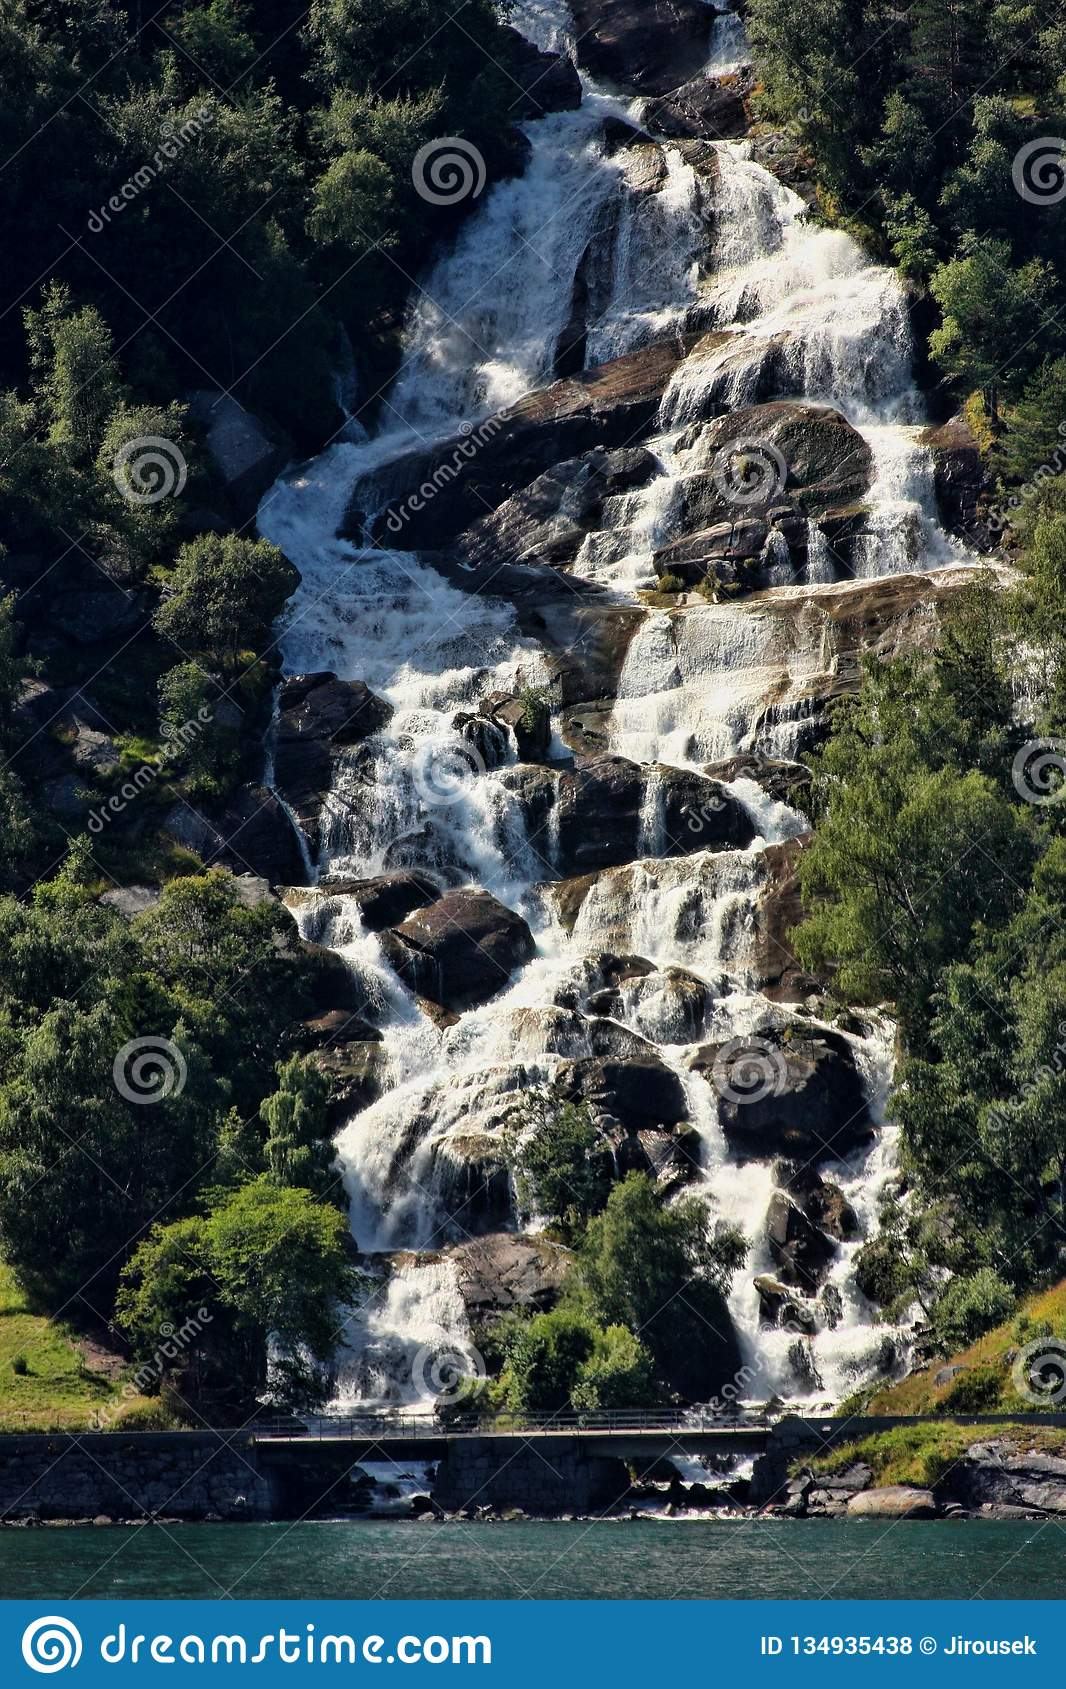 There are hundreds of beautiful waterfalls in Scandinavia